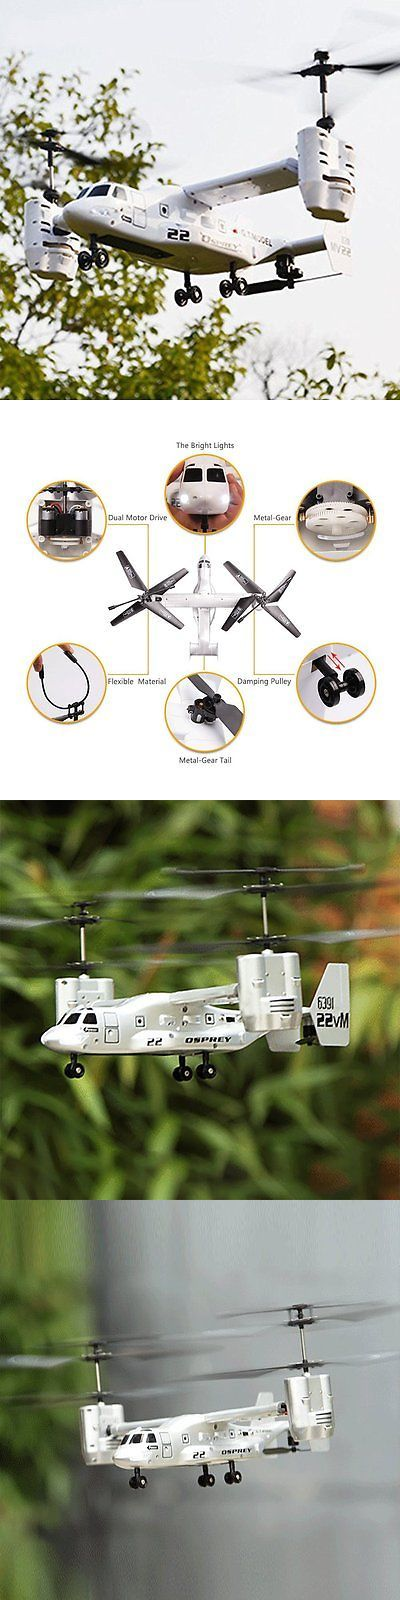 Other RC Model Vehicles and Kits 182186: Luckstar Remote Control Uav Aircraft - 2.4Ghz 4.5Ch Dual Axis Rc Airplane With And -> BUY IT NOW ONLY: $68.26 on eBay!